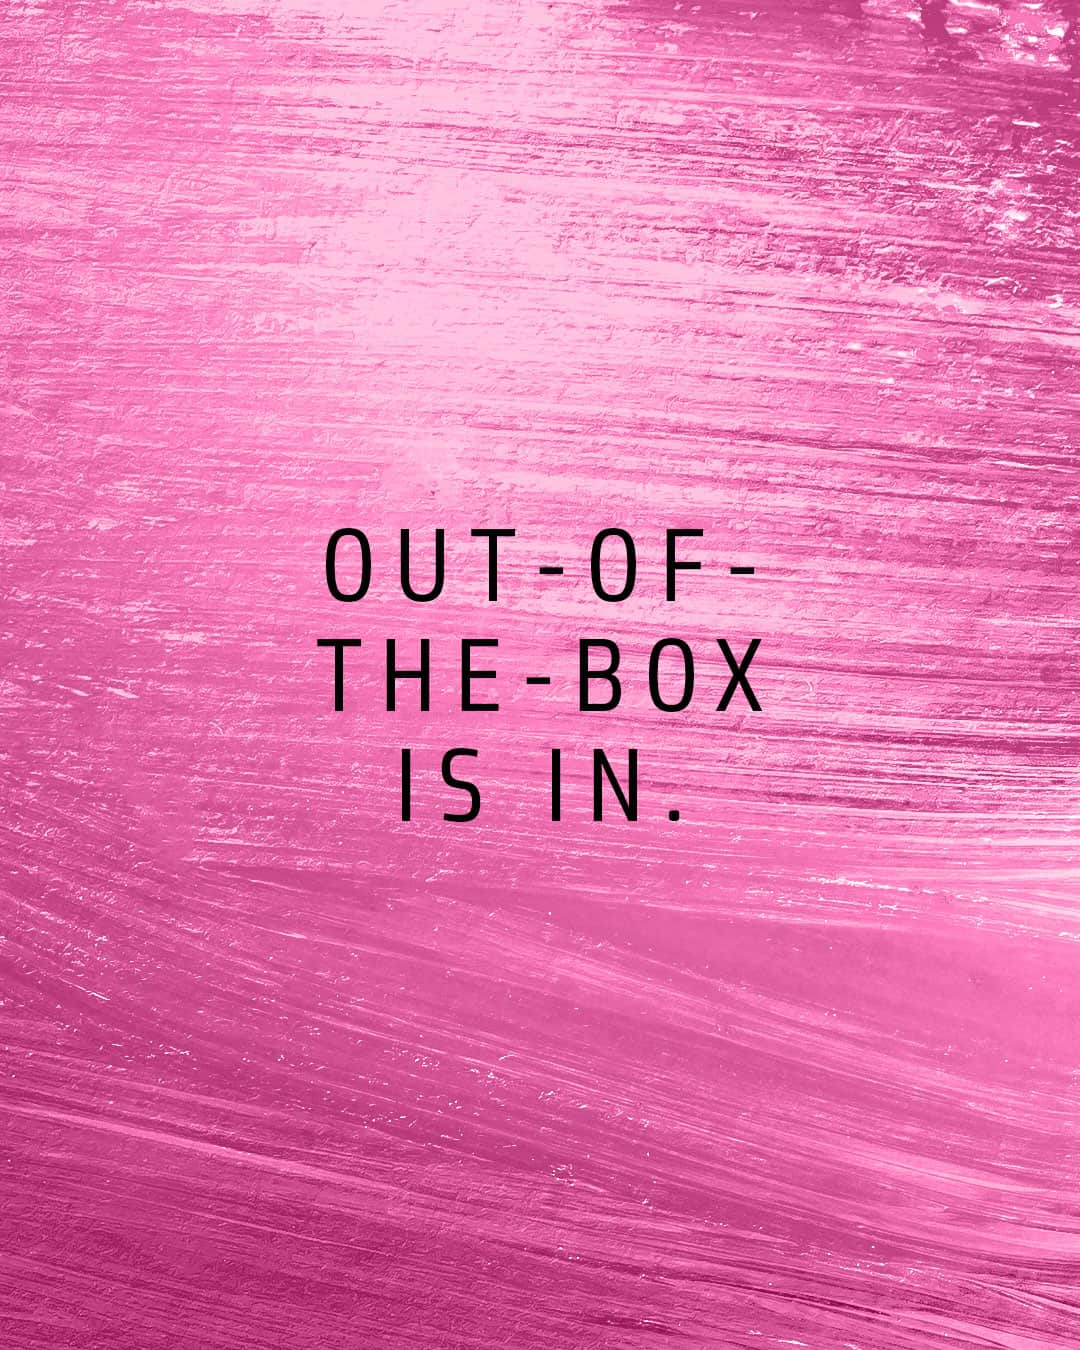 """Text on pink background reading """"Out of the box is in""""."""